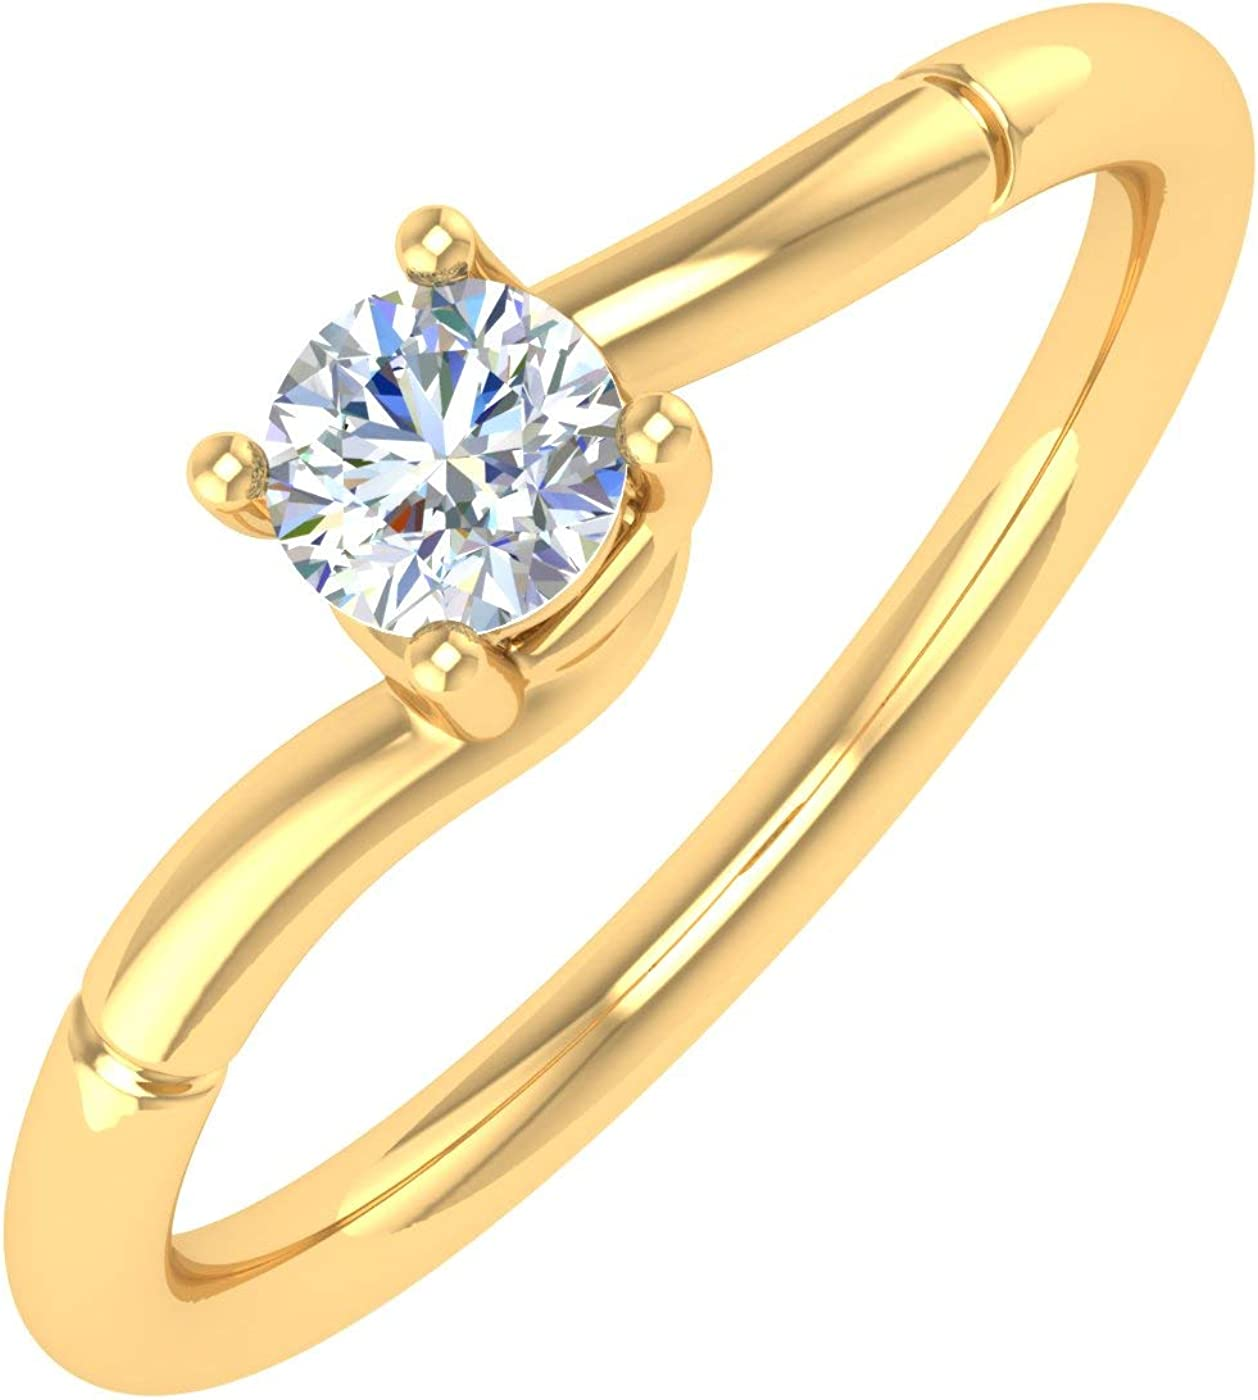 1/4 Carat 4-Prong Set Diamond Solitaire Engagement Ring Band in 14K Gold - IGI Certified